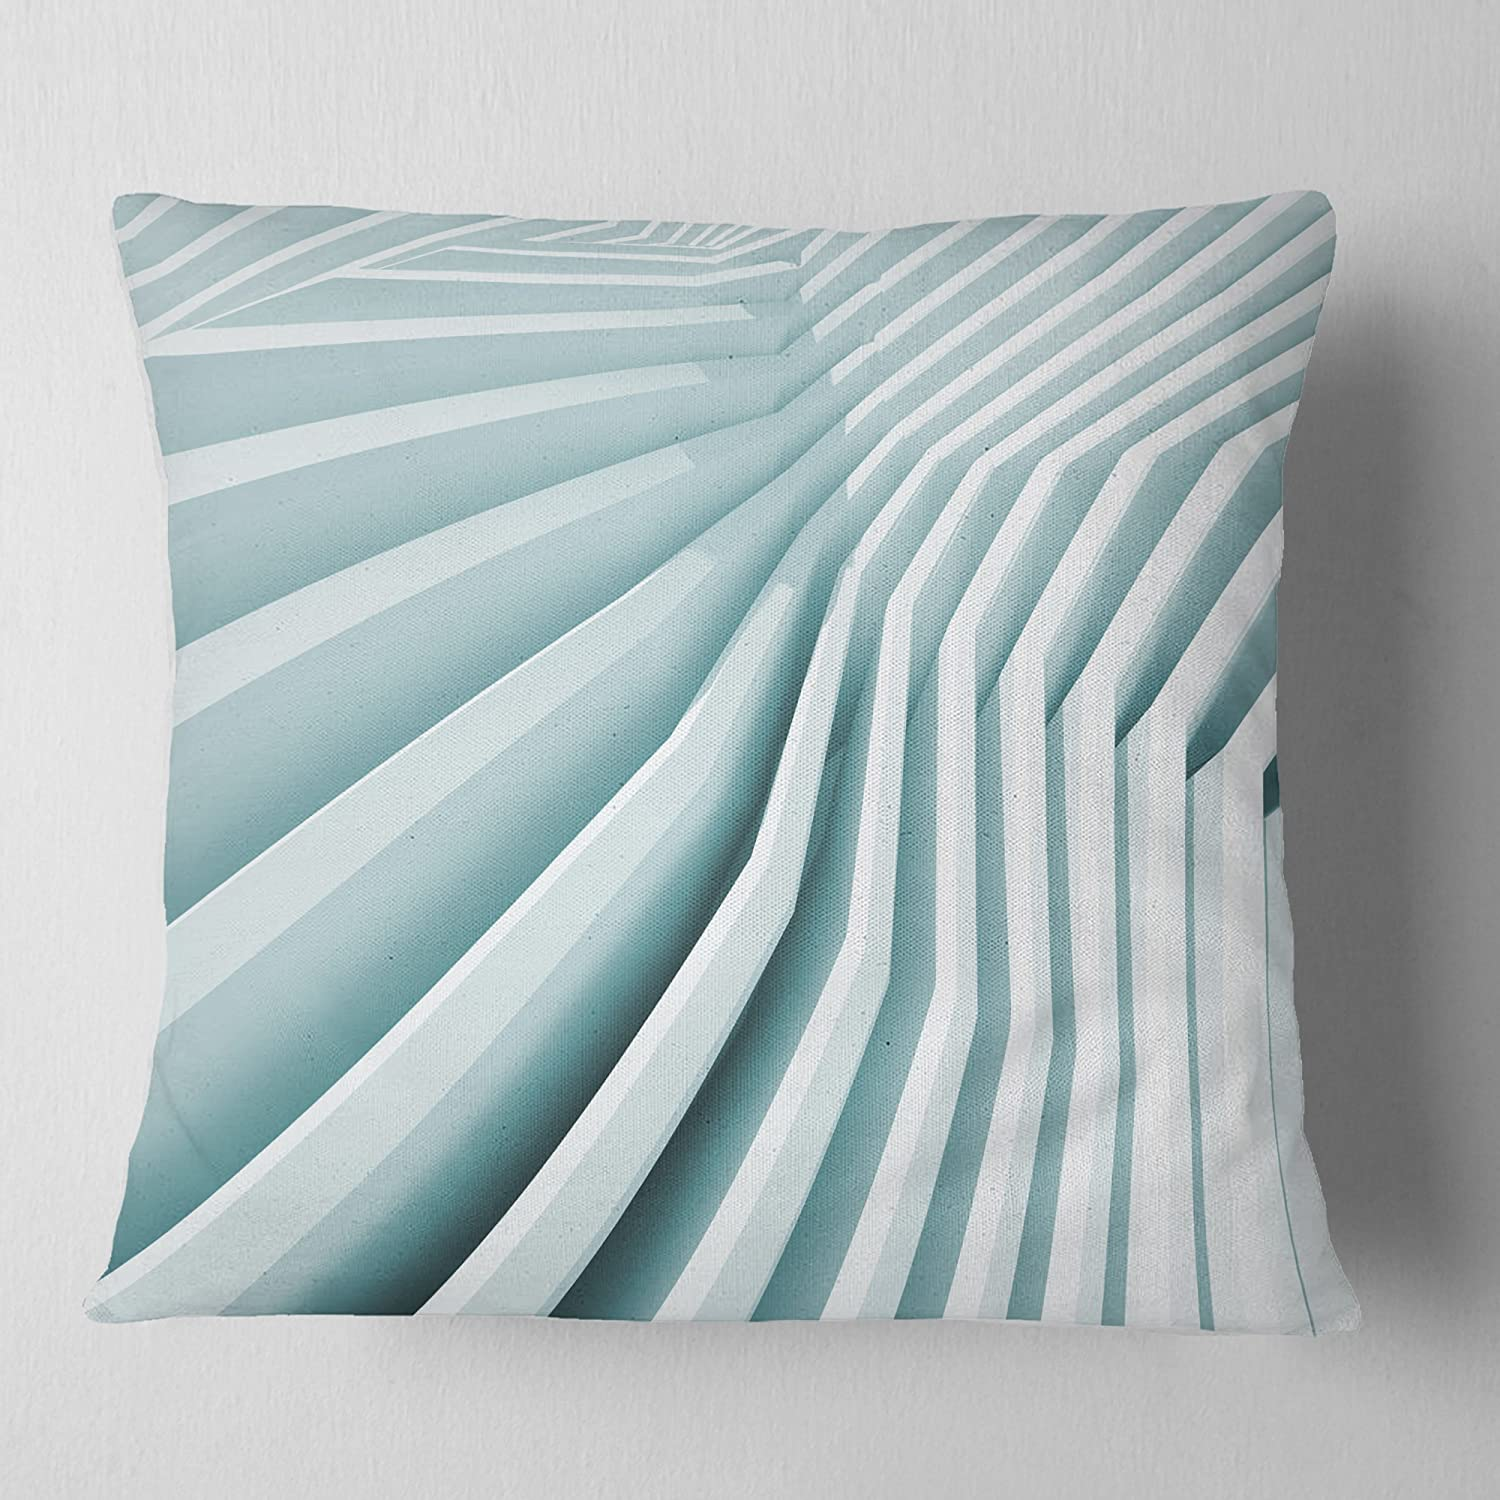 Designart CU9379-18-18 Fractal Architecture 3D Waves Contemporary Cushion Cover for Living Room x 18 in in Sofa Throw Pillow 18 in Insert Printed On Both Side